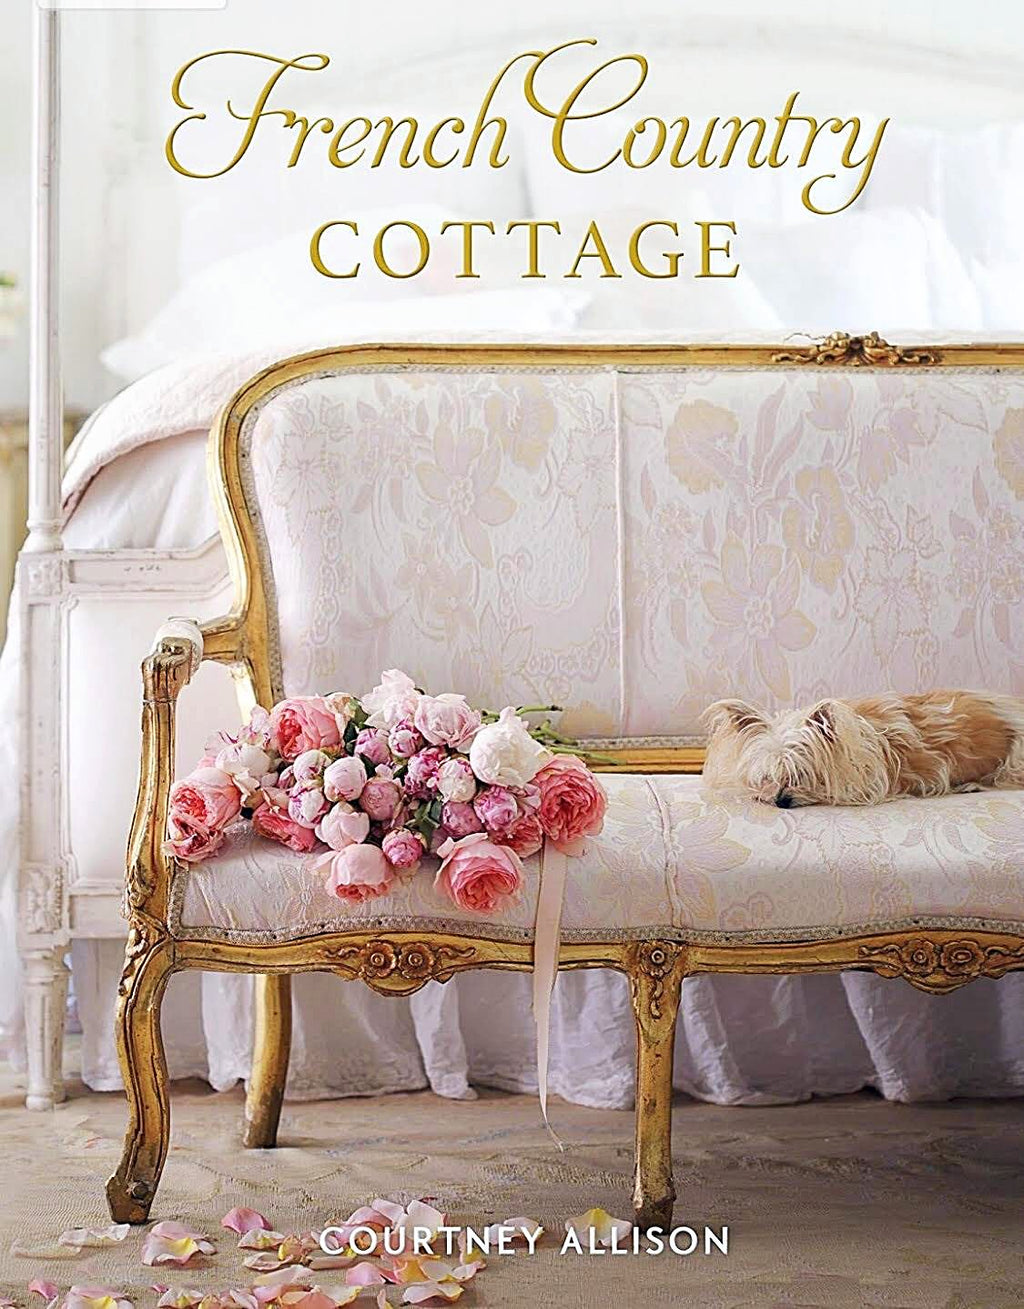 Signed Copy of French Country Cottage Book